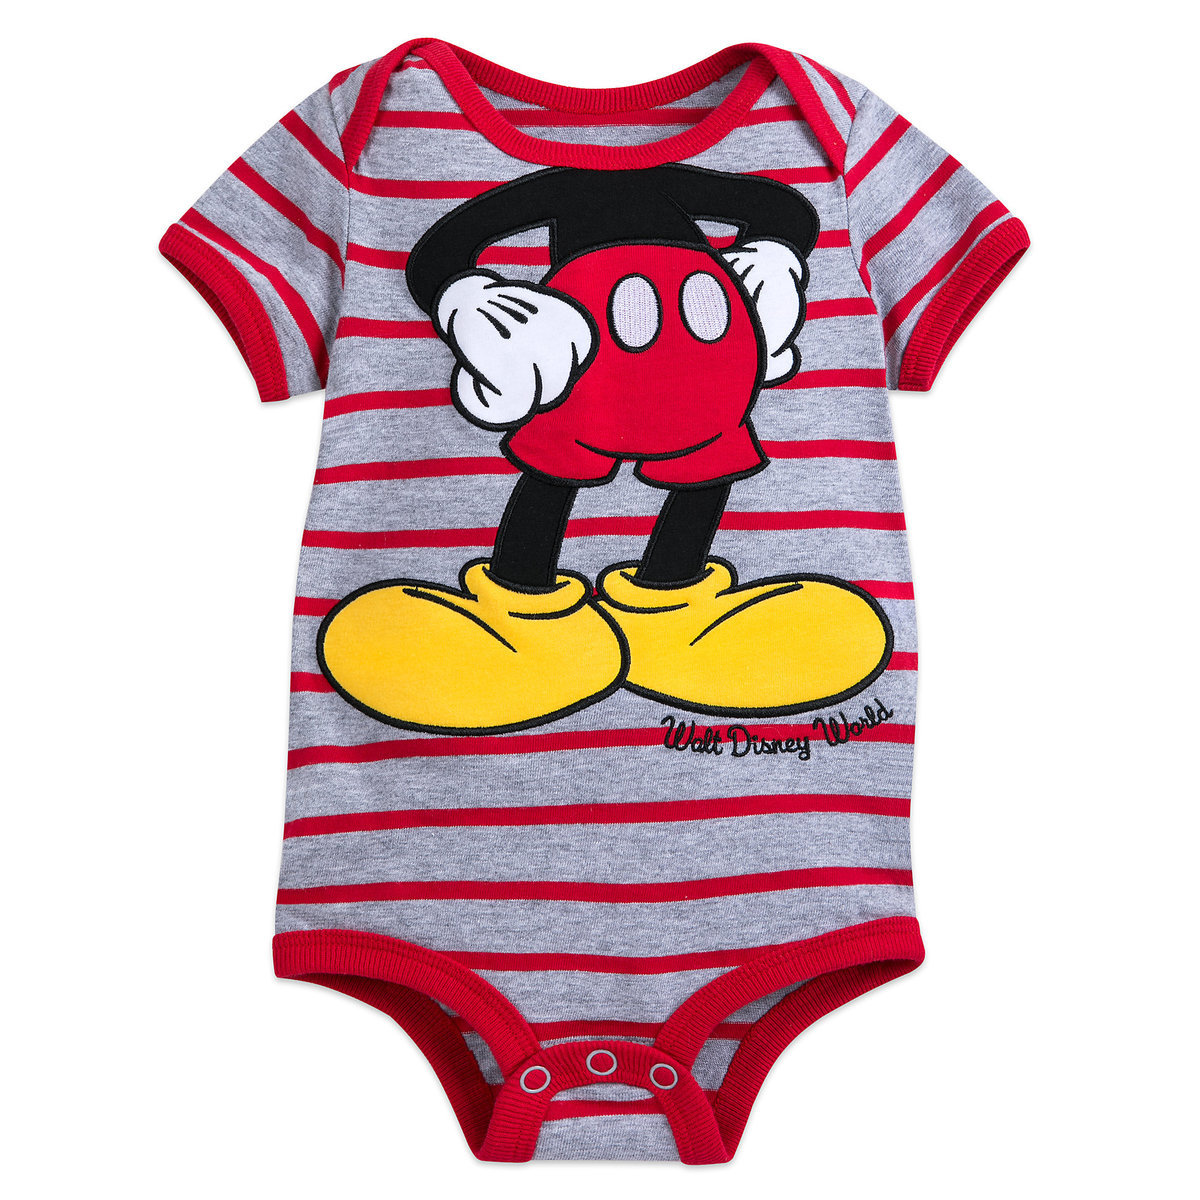 961f84844 Product Image of Mickey Mouse Striped Bodysuit for Baby - Walt Disney World  # 1